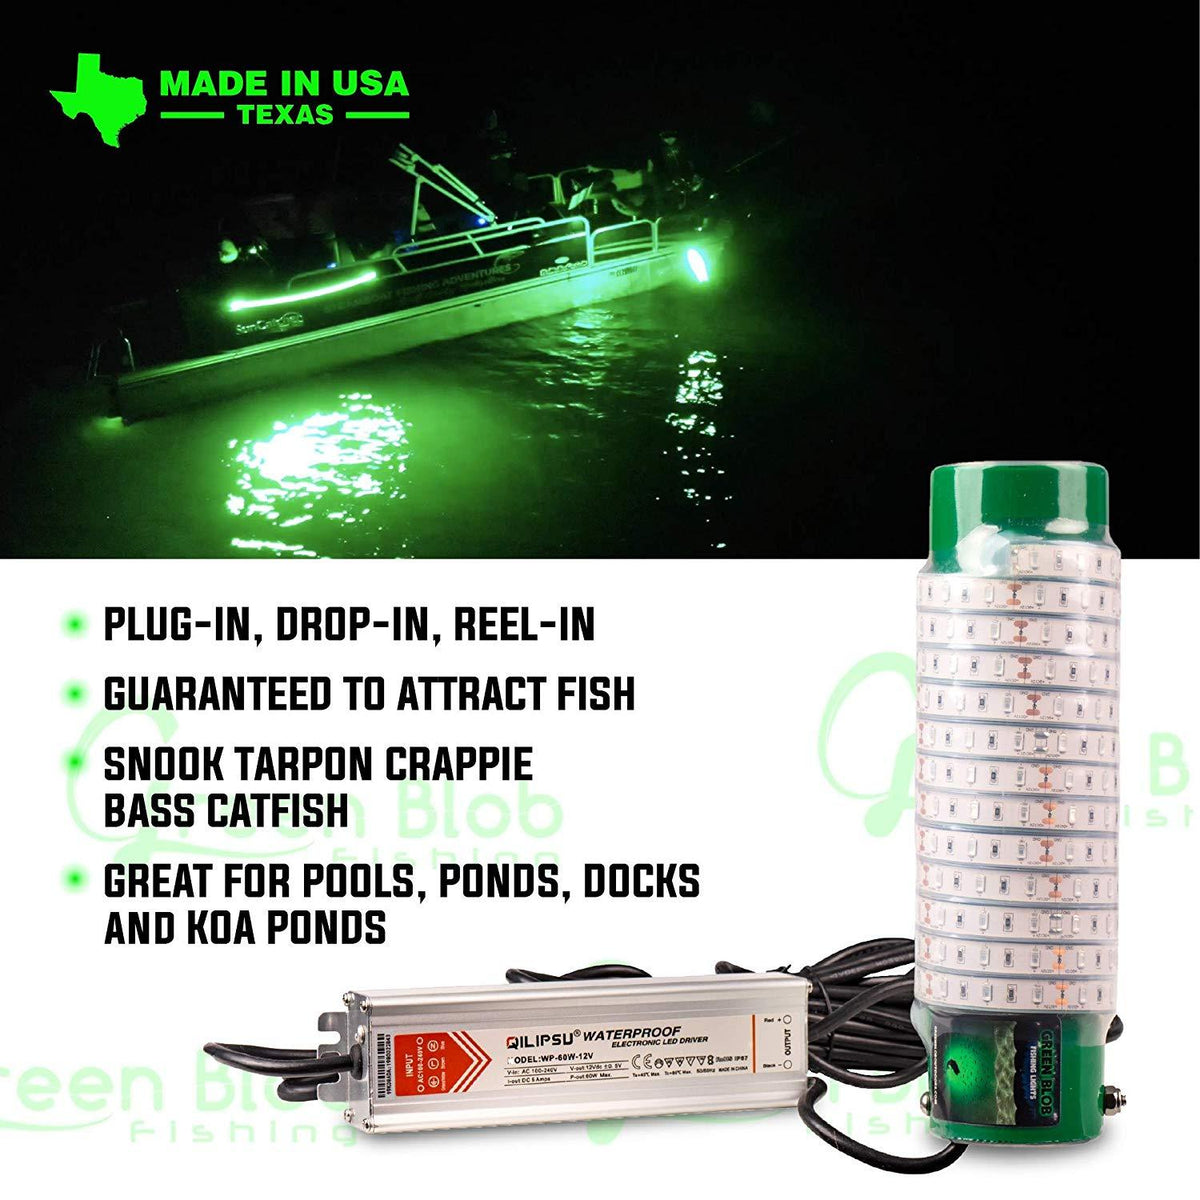 White Blob Underwater Dock Fishing Light 7500 Lumen w 110v AC adapter and 3 prong plug Fishing Lights Green Blob Outdoors